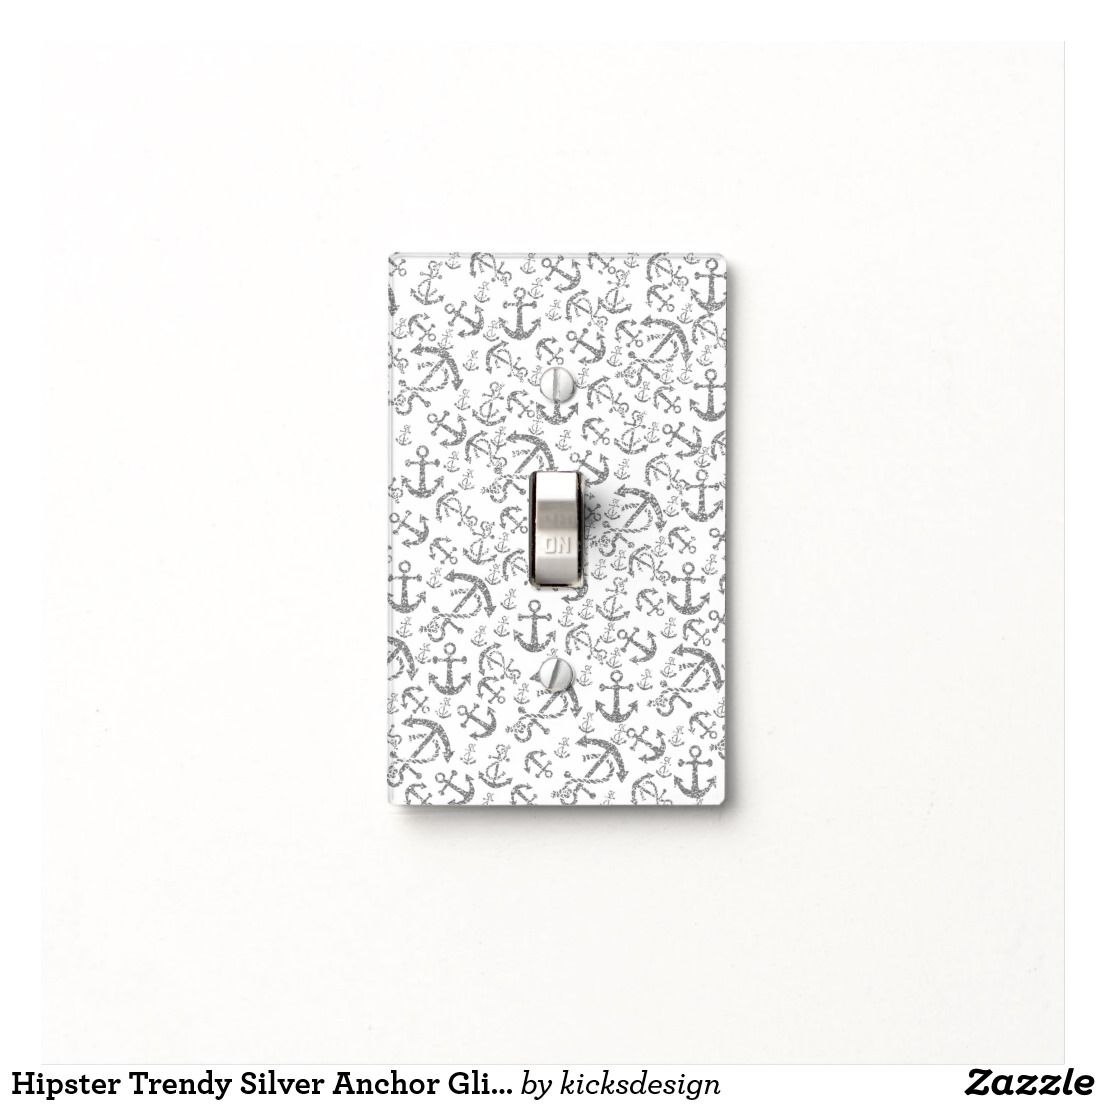 Silver Light Switch Covers Hipster Trendy Silver Anchor Glitter Photo Print Light Switch